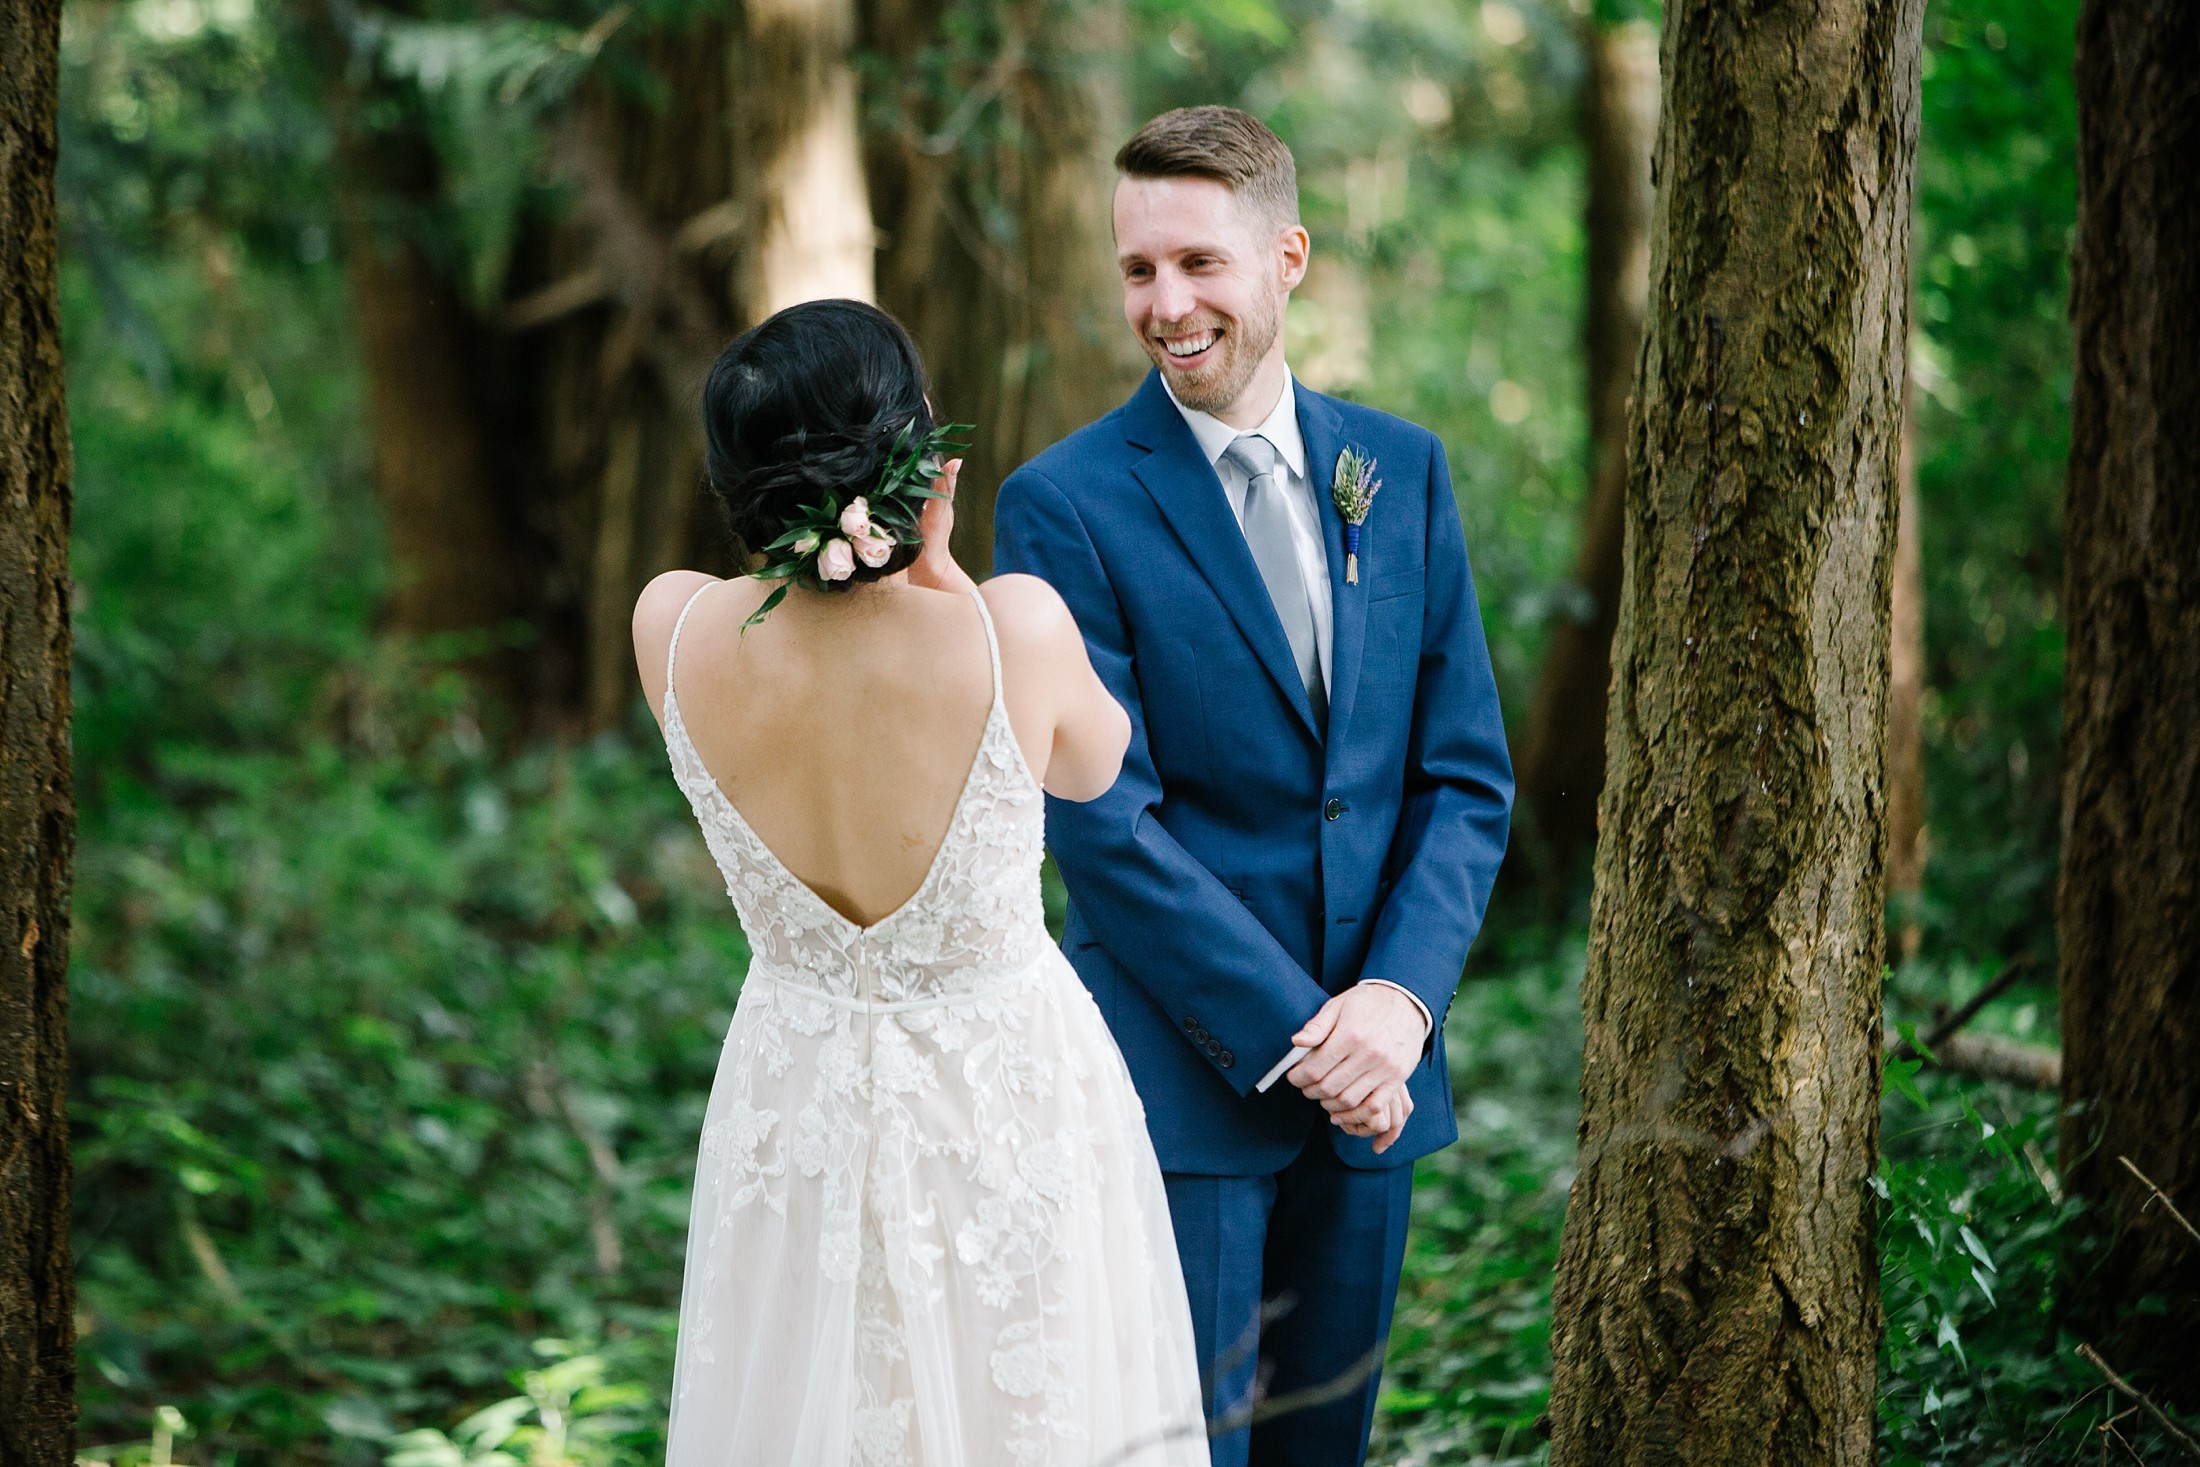 May26.TiffanyandSpencer5055_Sea Cider Farm and Ciderhouse Wedding Documentary Wedding Photography Award Winning Photojournalist Vancouver Island Photographers Victoria Photographer Note Photography Seacider Wedding Orchard Wedding Photos First Look.jpg